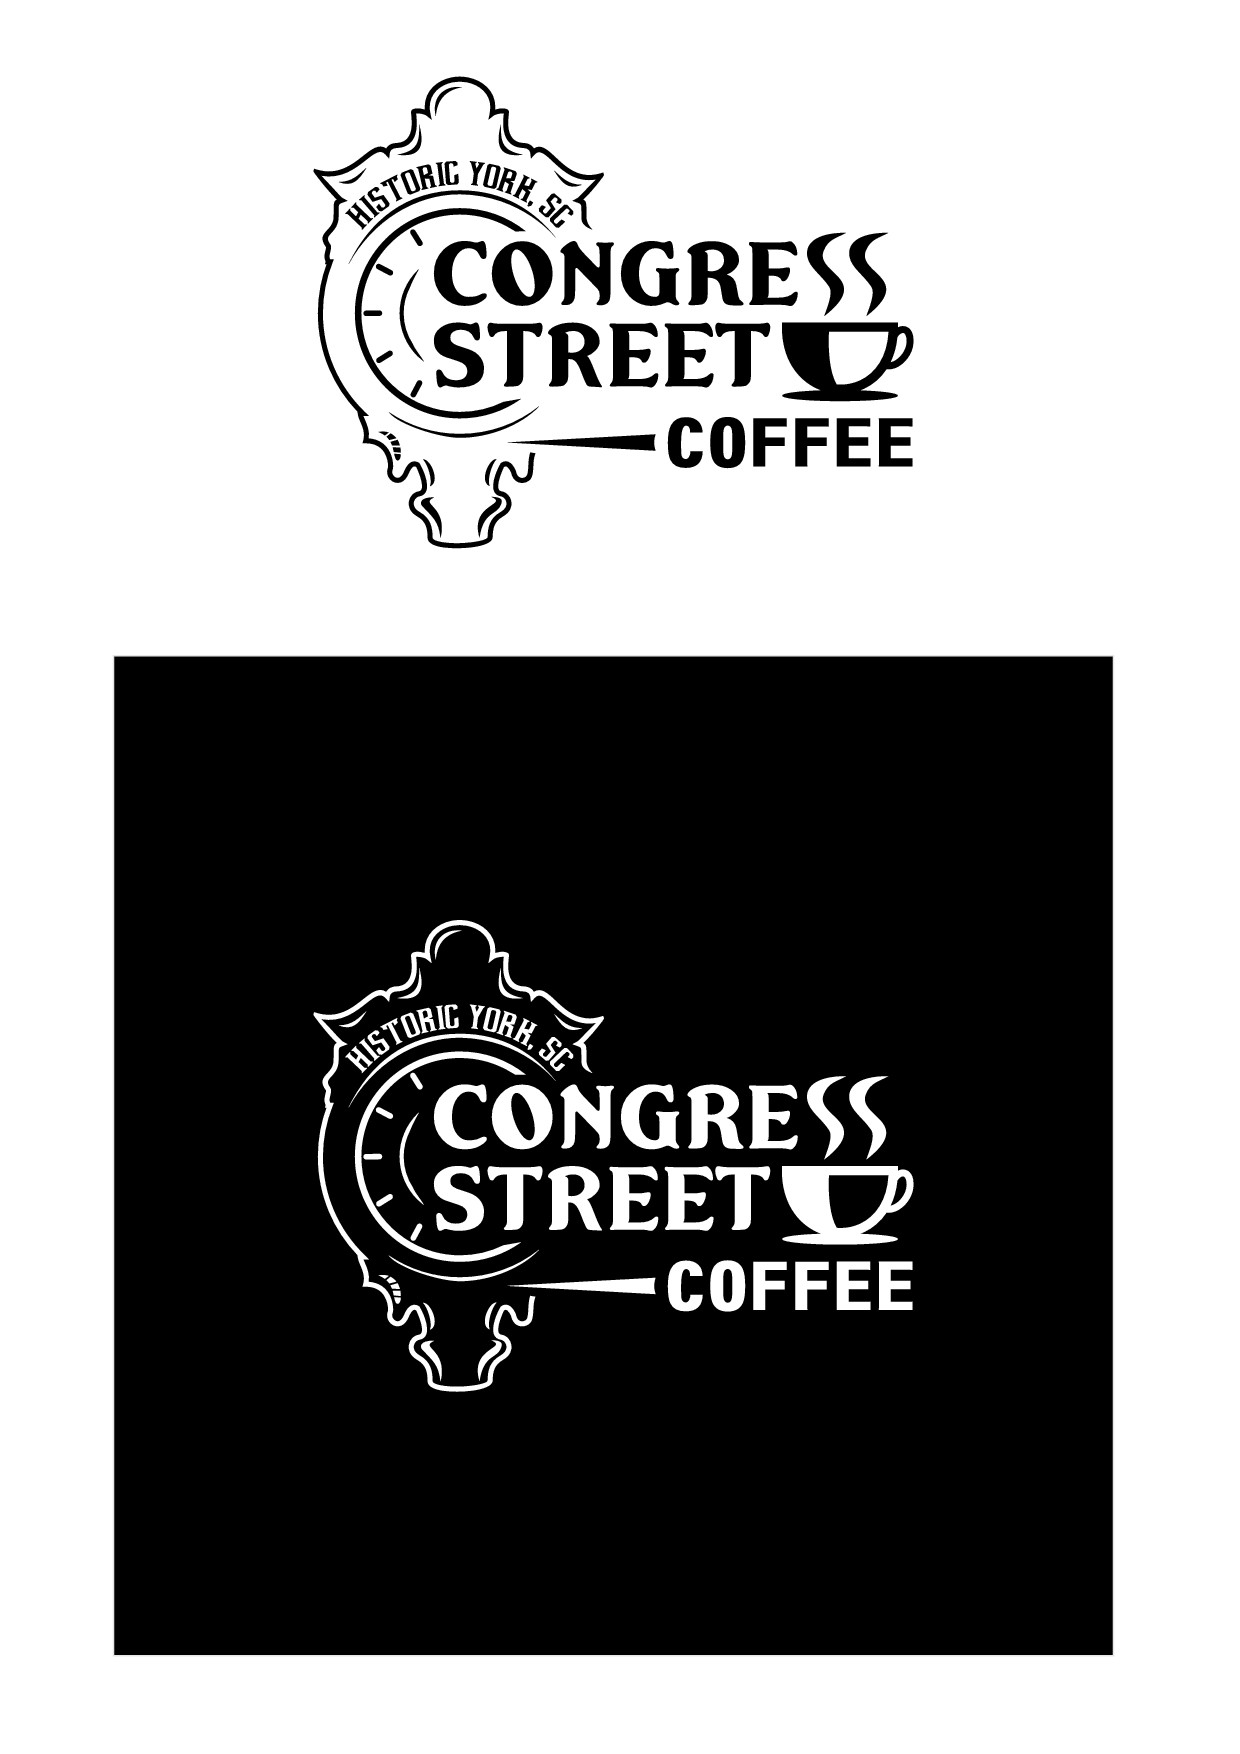 Creative coffee & community convergence for a specialty coffee shop in historic downtown York